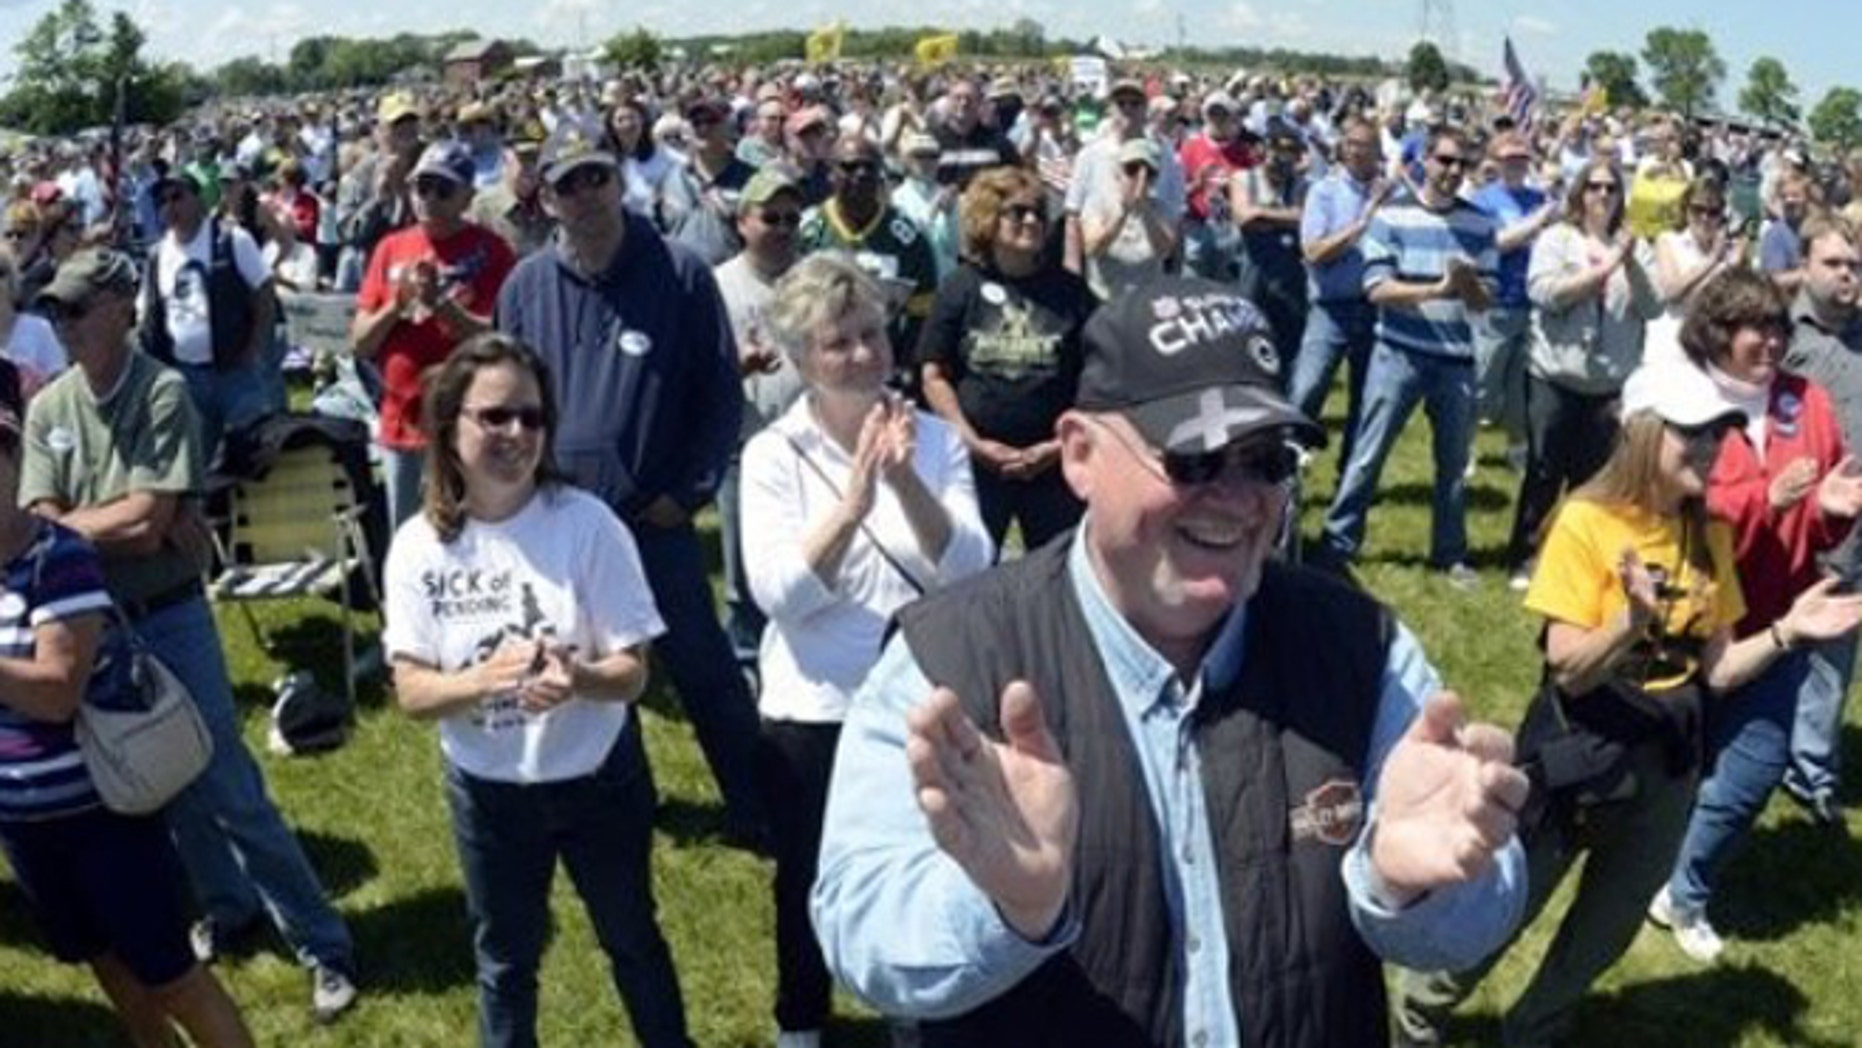 FILE: June 2, 2012: Spectators applaud at a rally held by the Racine Tea Party PAC in Gorney Park in Caledonia, Wis.